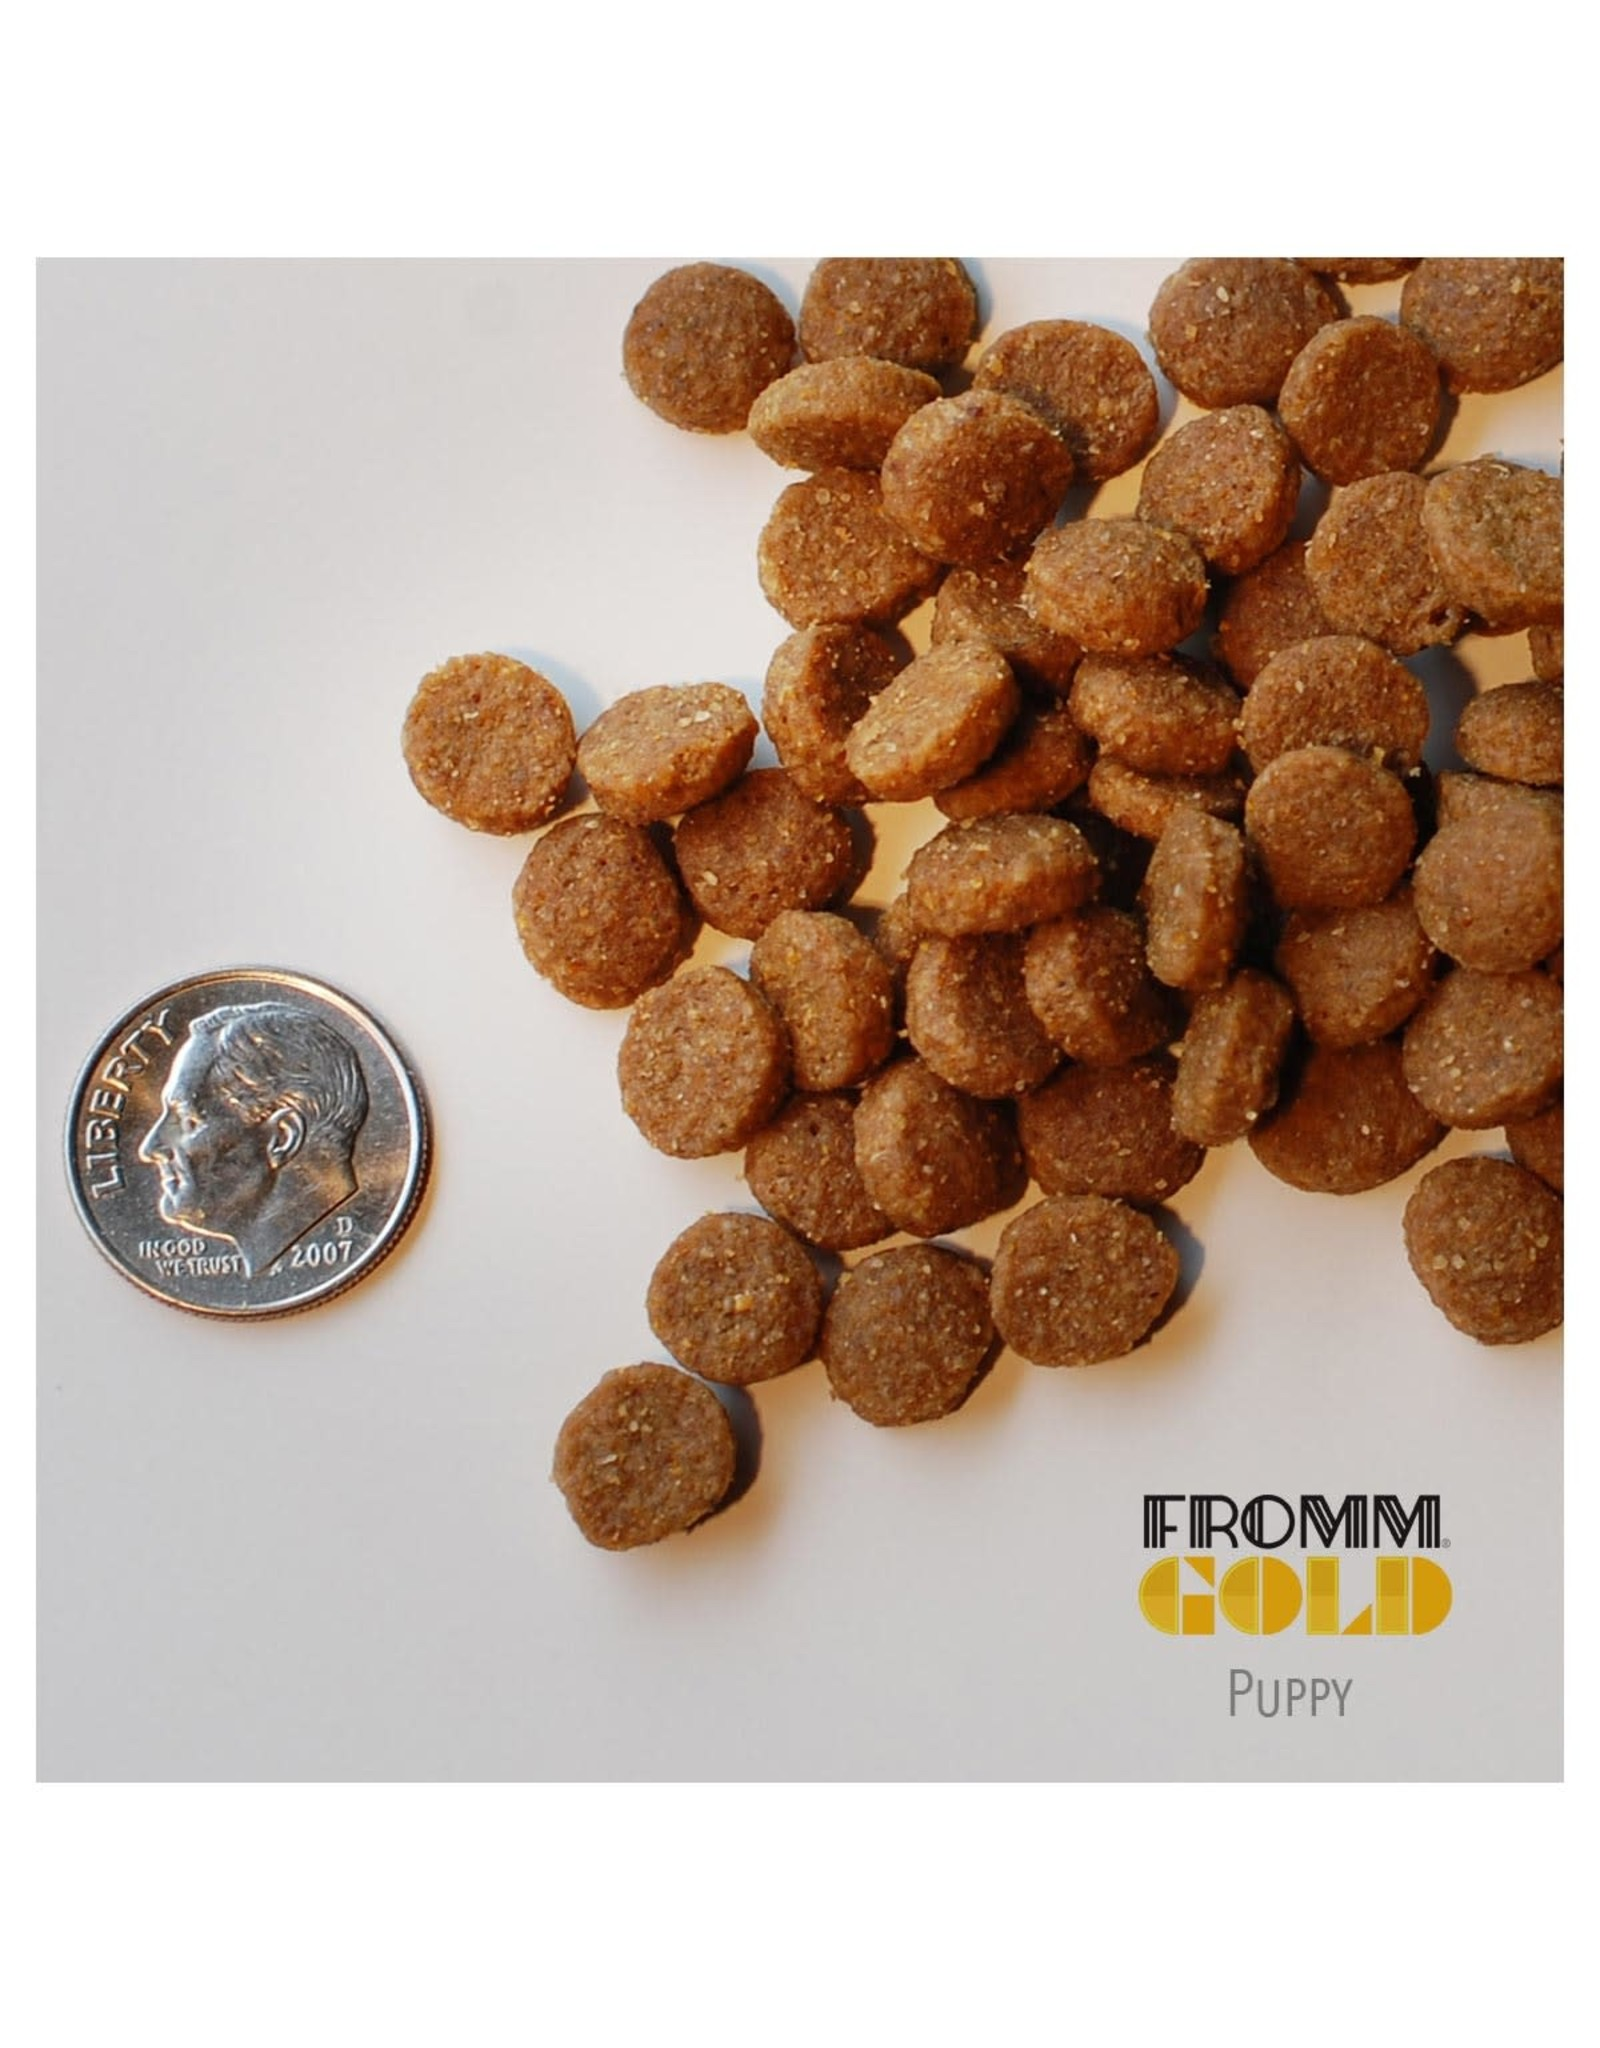 Fromm Family Fromm Gold Puppy Dog Food